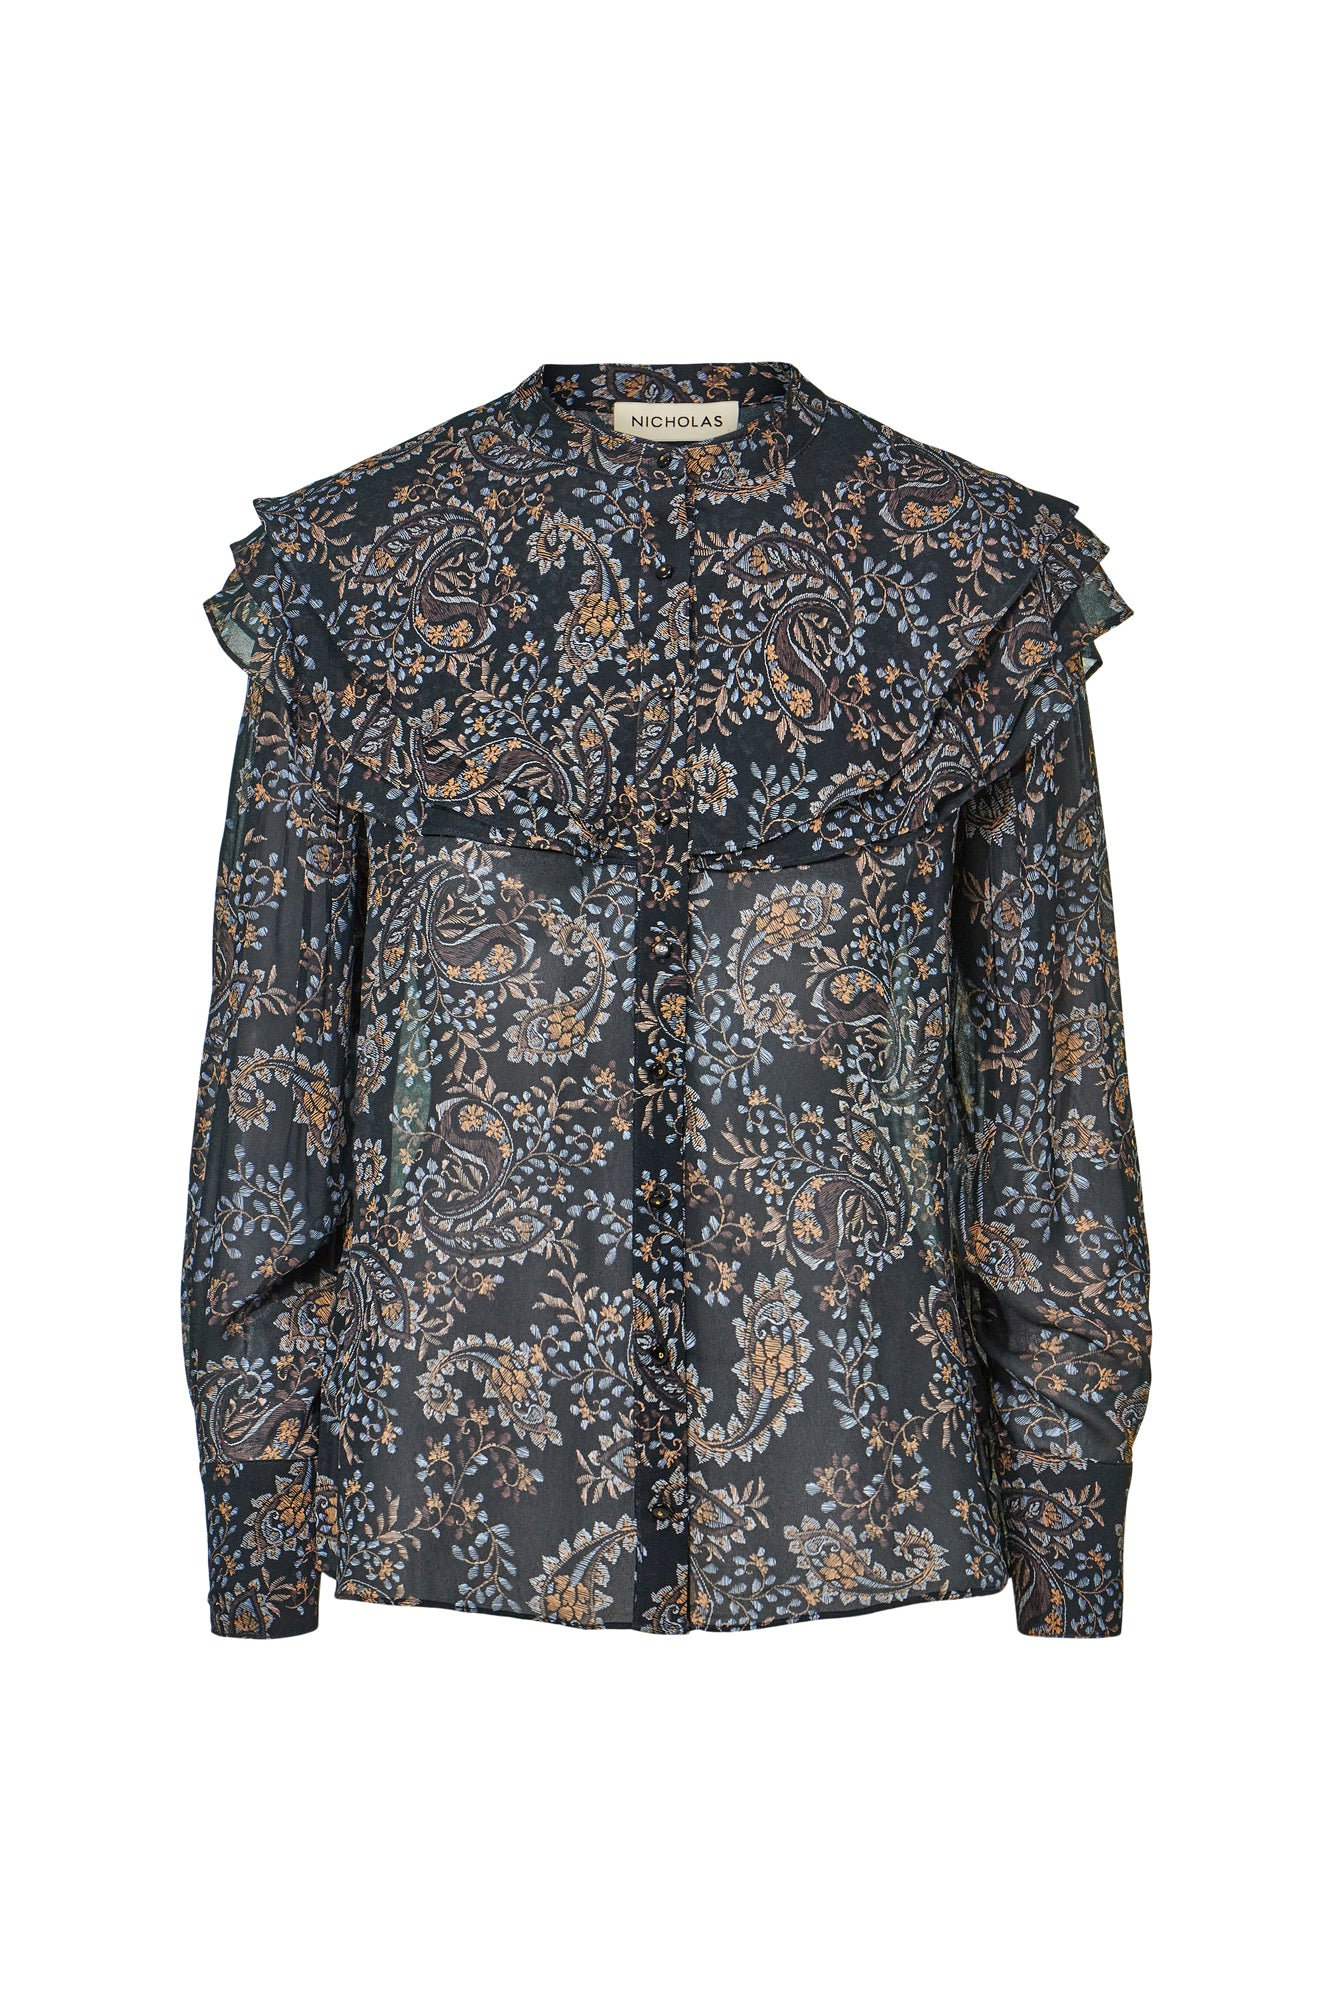 Galina Top - Etched Paisley Black